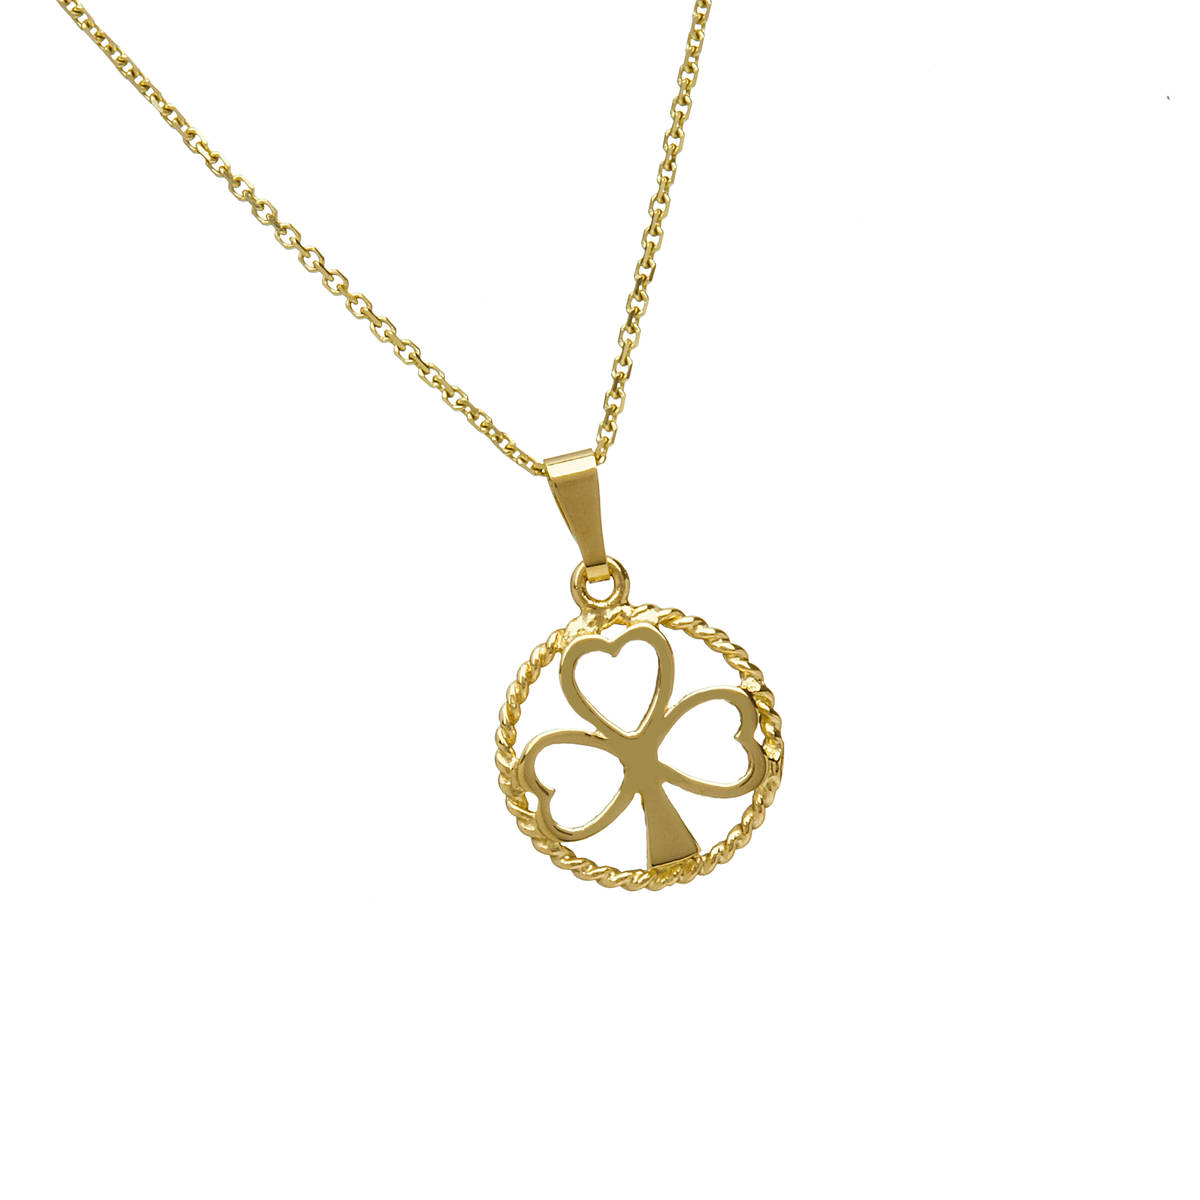 "10 carat yellow gold open shamrock in circle pendant on 18"" chain."